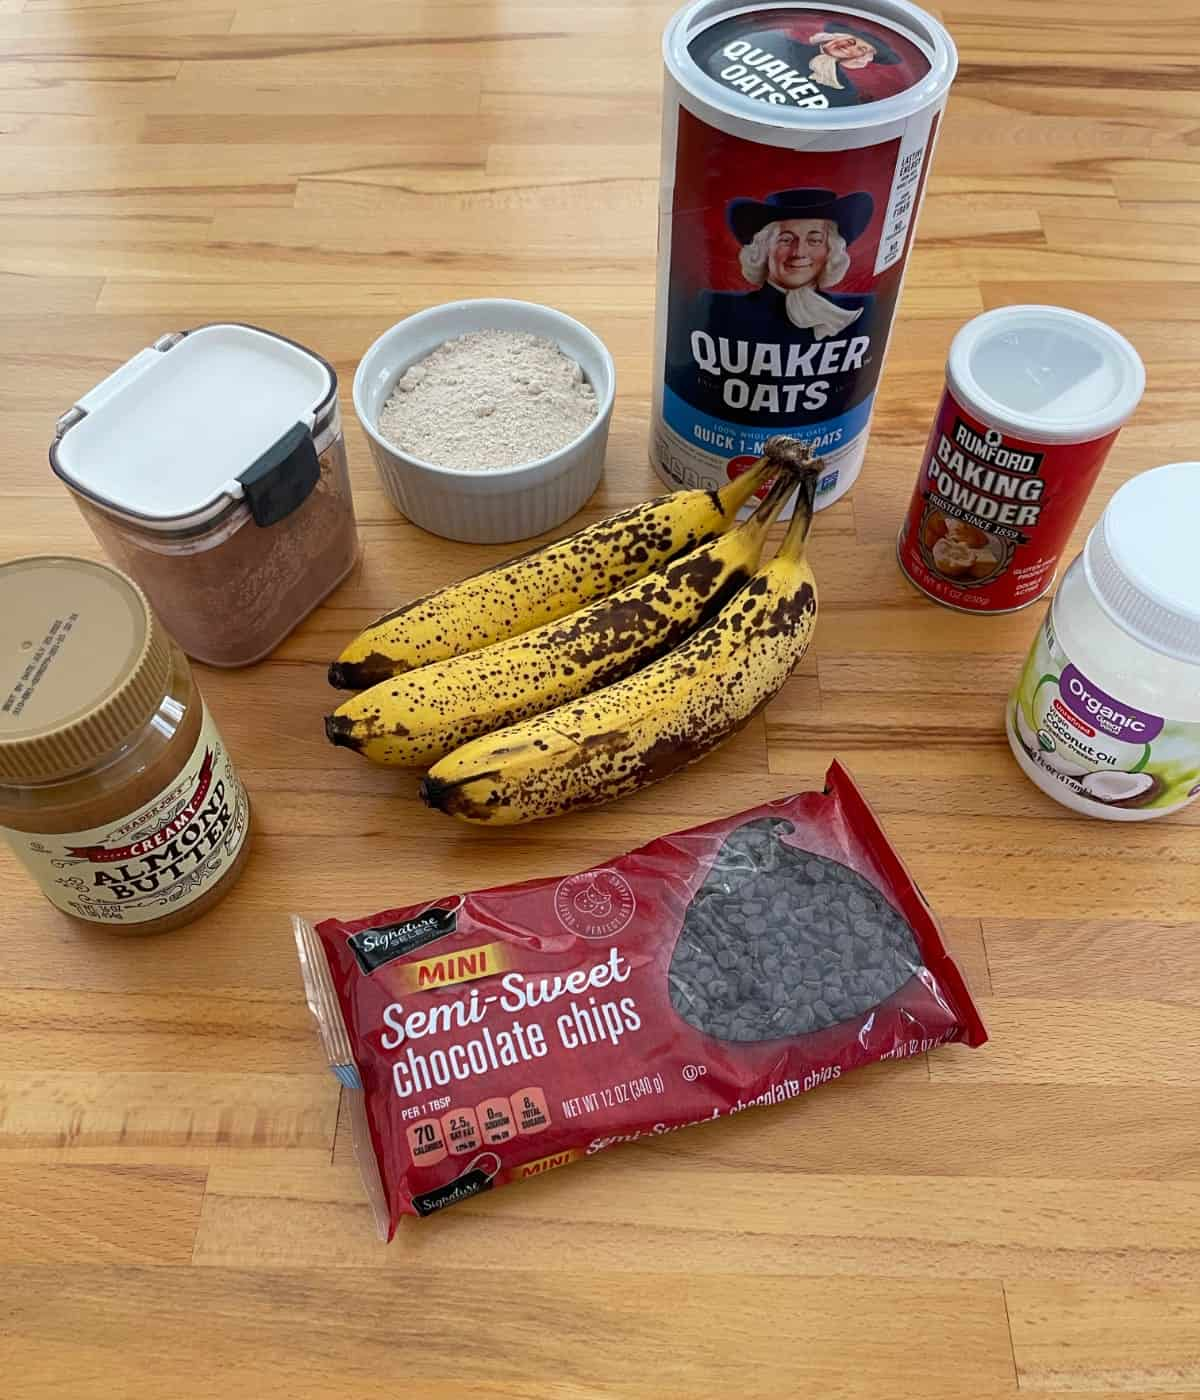 Ingredients for making banana bread brownies, including bananas, mini chocolate chips, almond butter, cocoa powder, flour, oats and coconut oil.